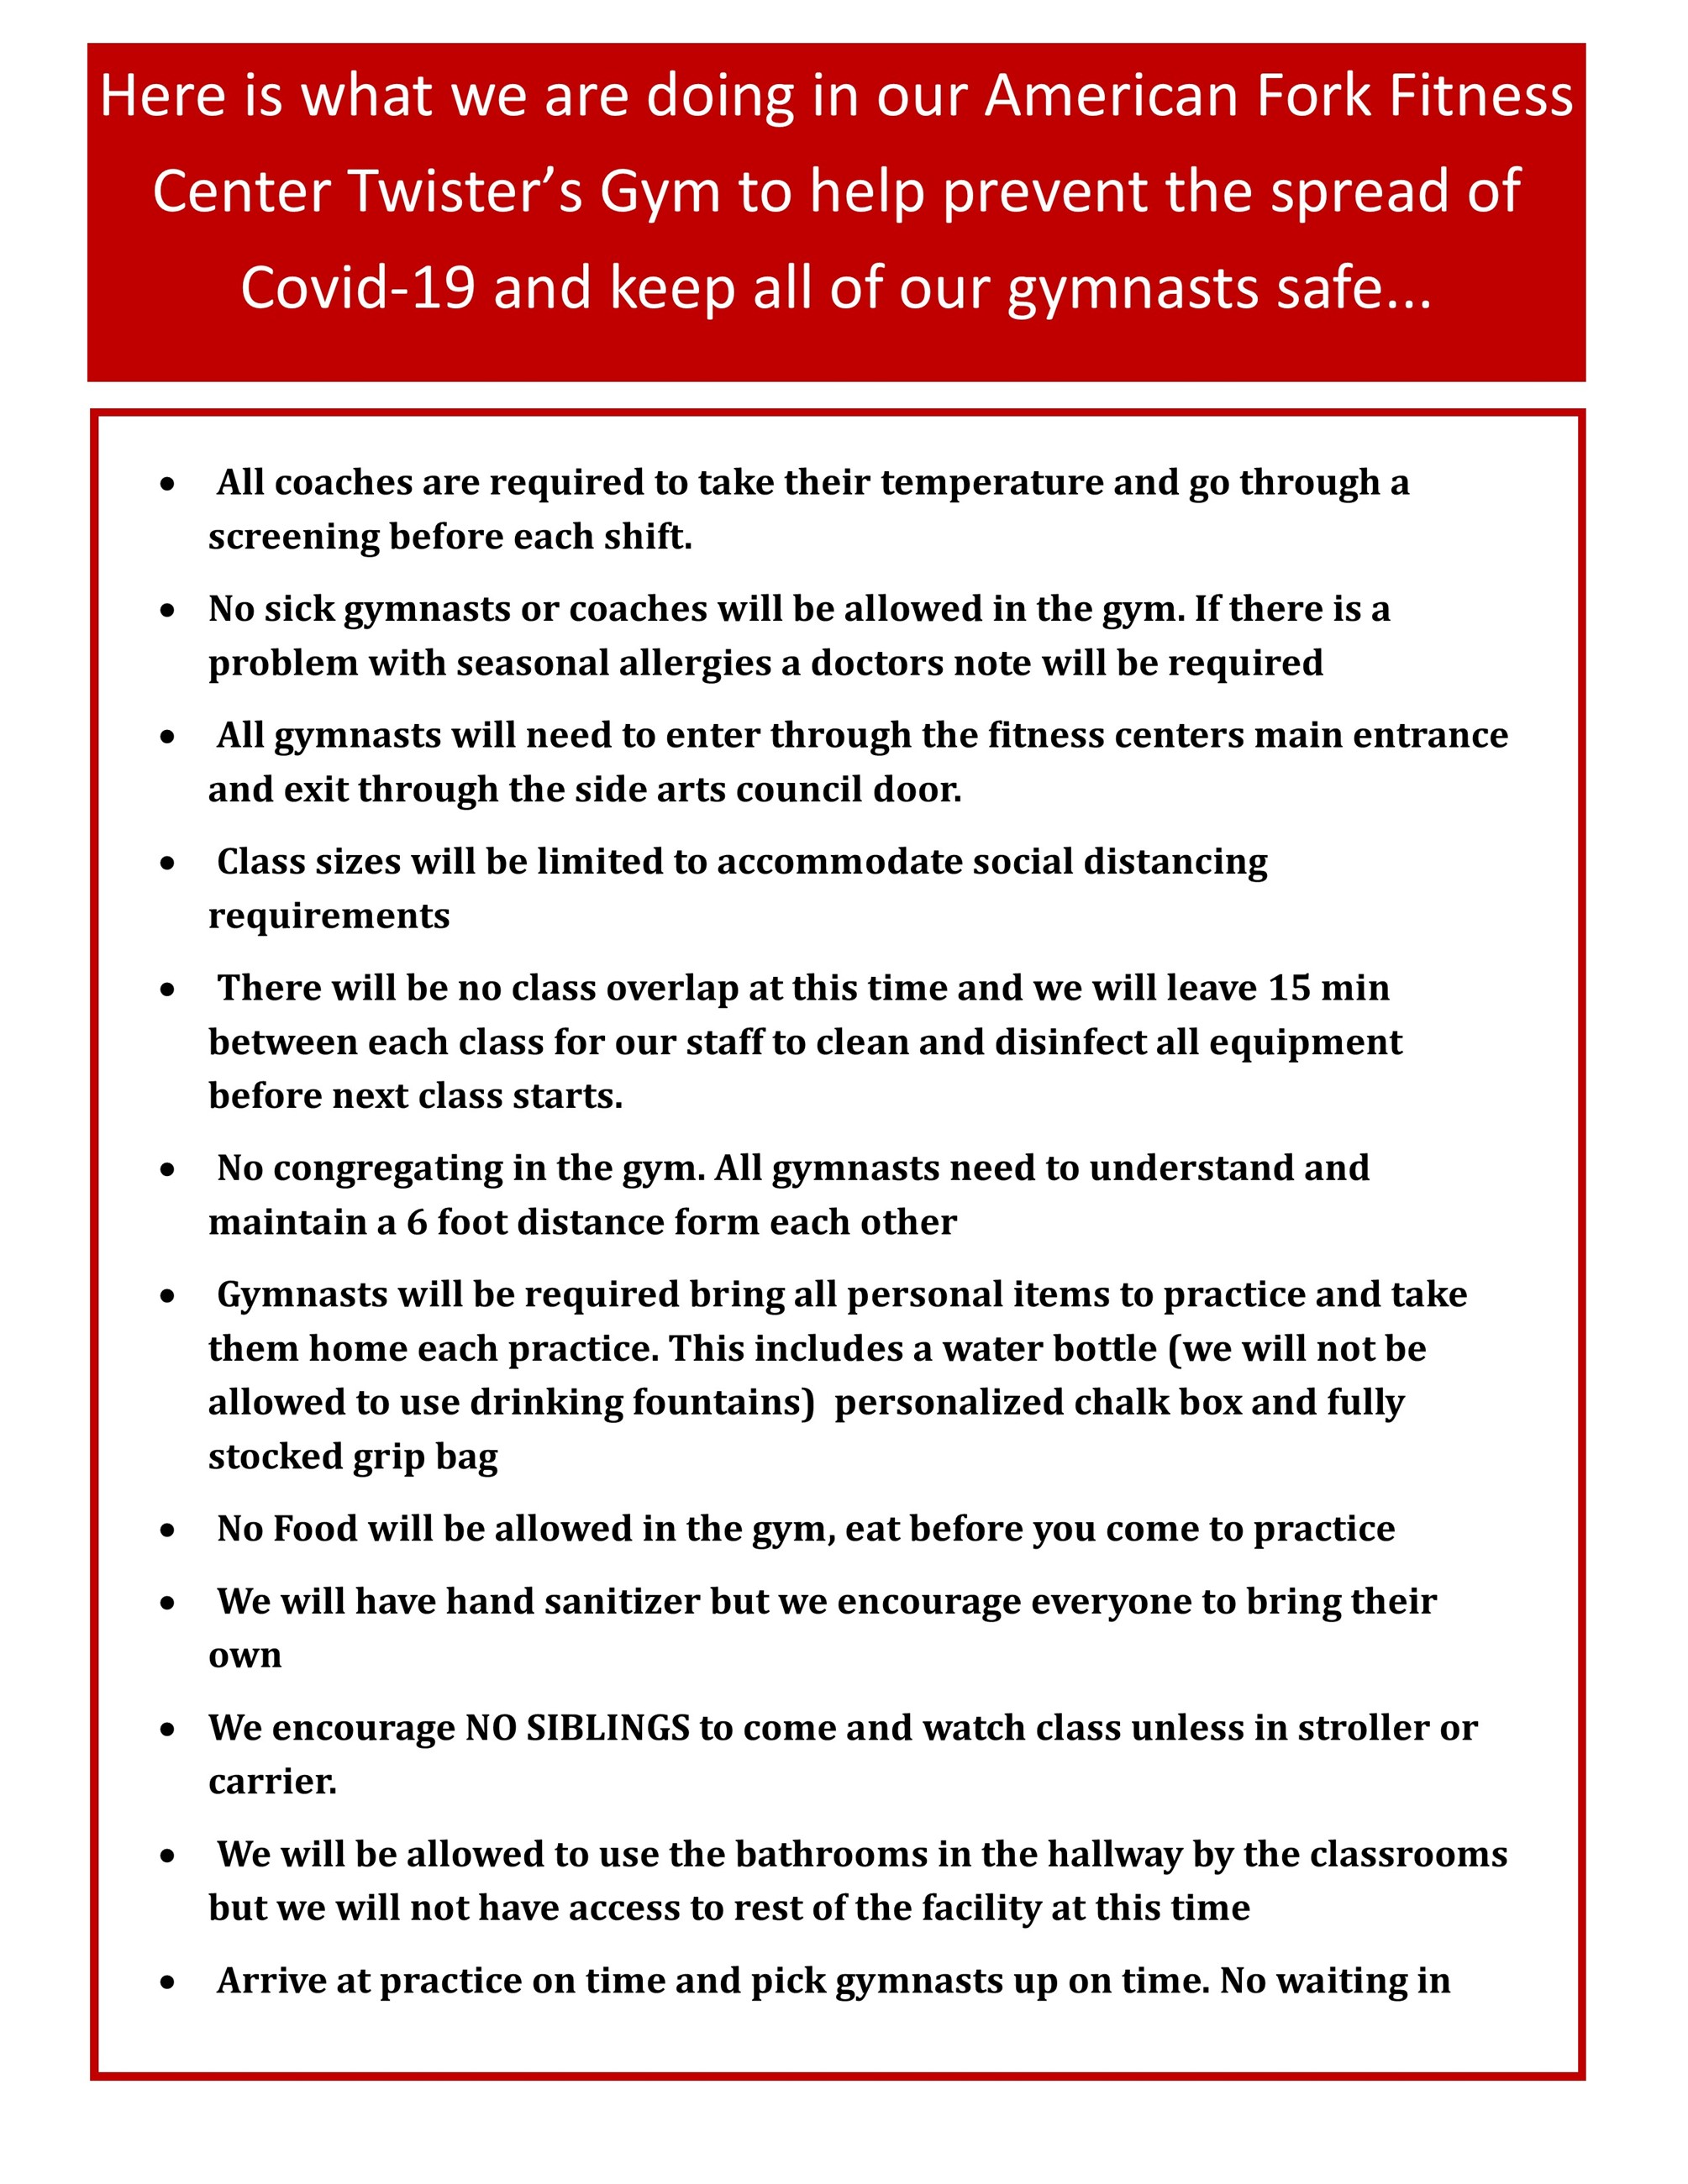 Gym Covid-19 safety and rules.jpg